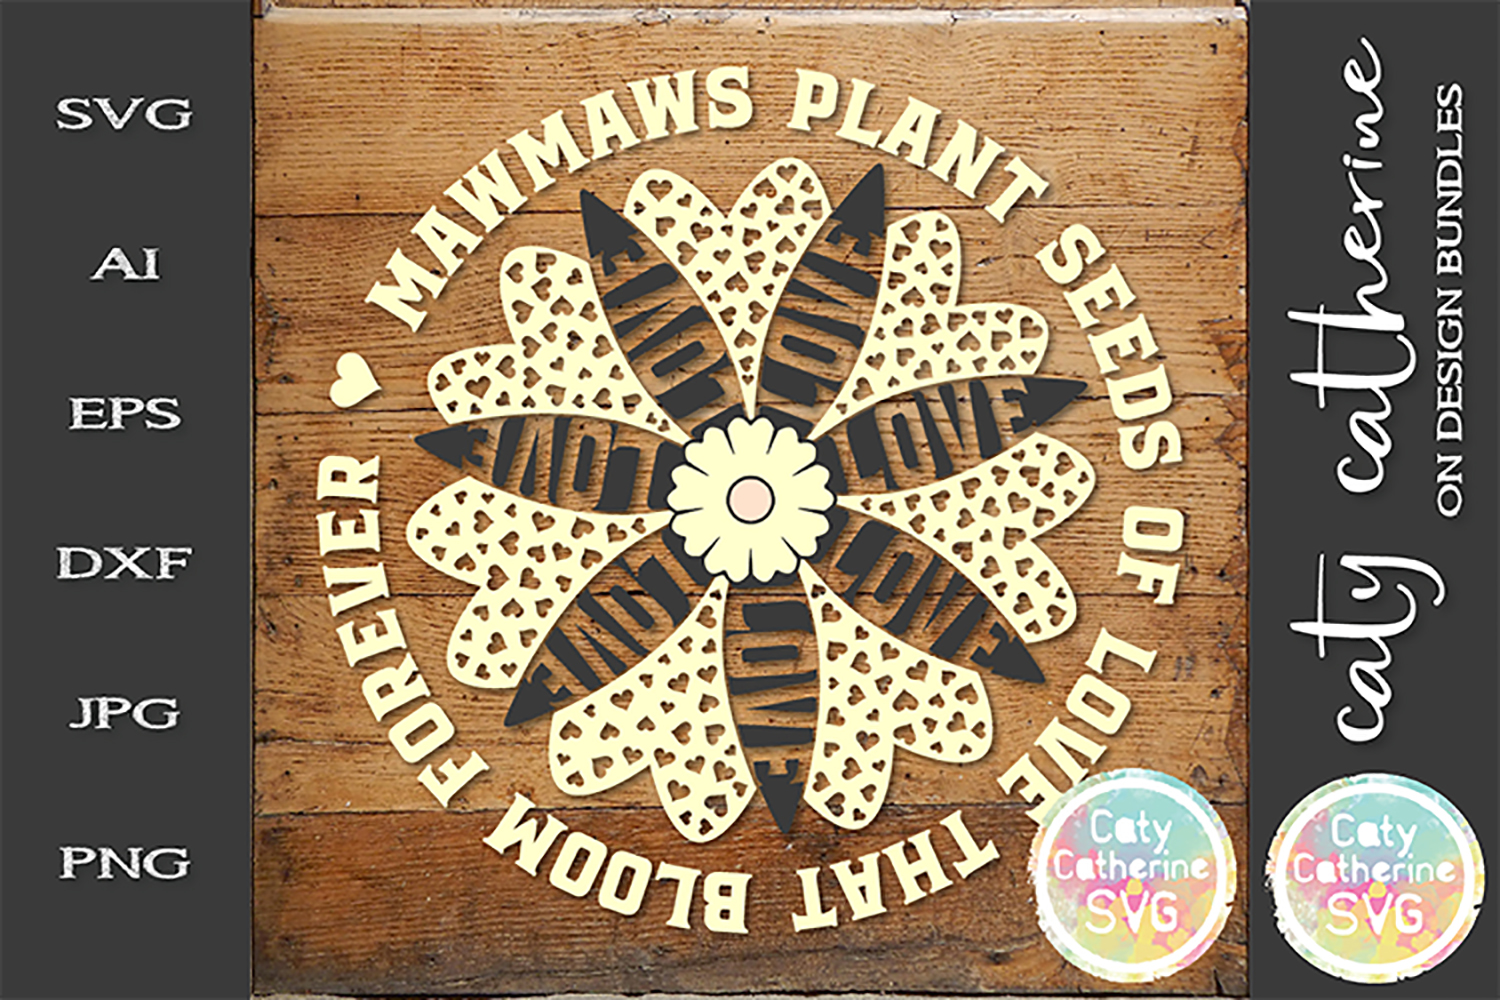 Mawmaws Plant Seeds Of Love That Bloom Forever SVG Cut example image 1